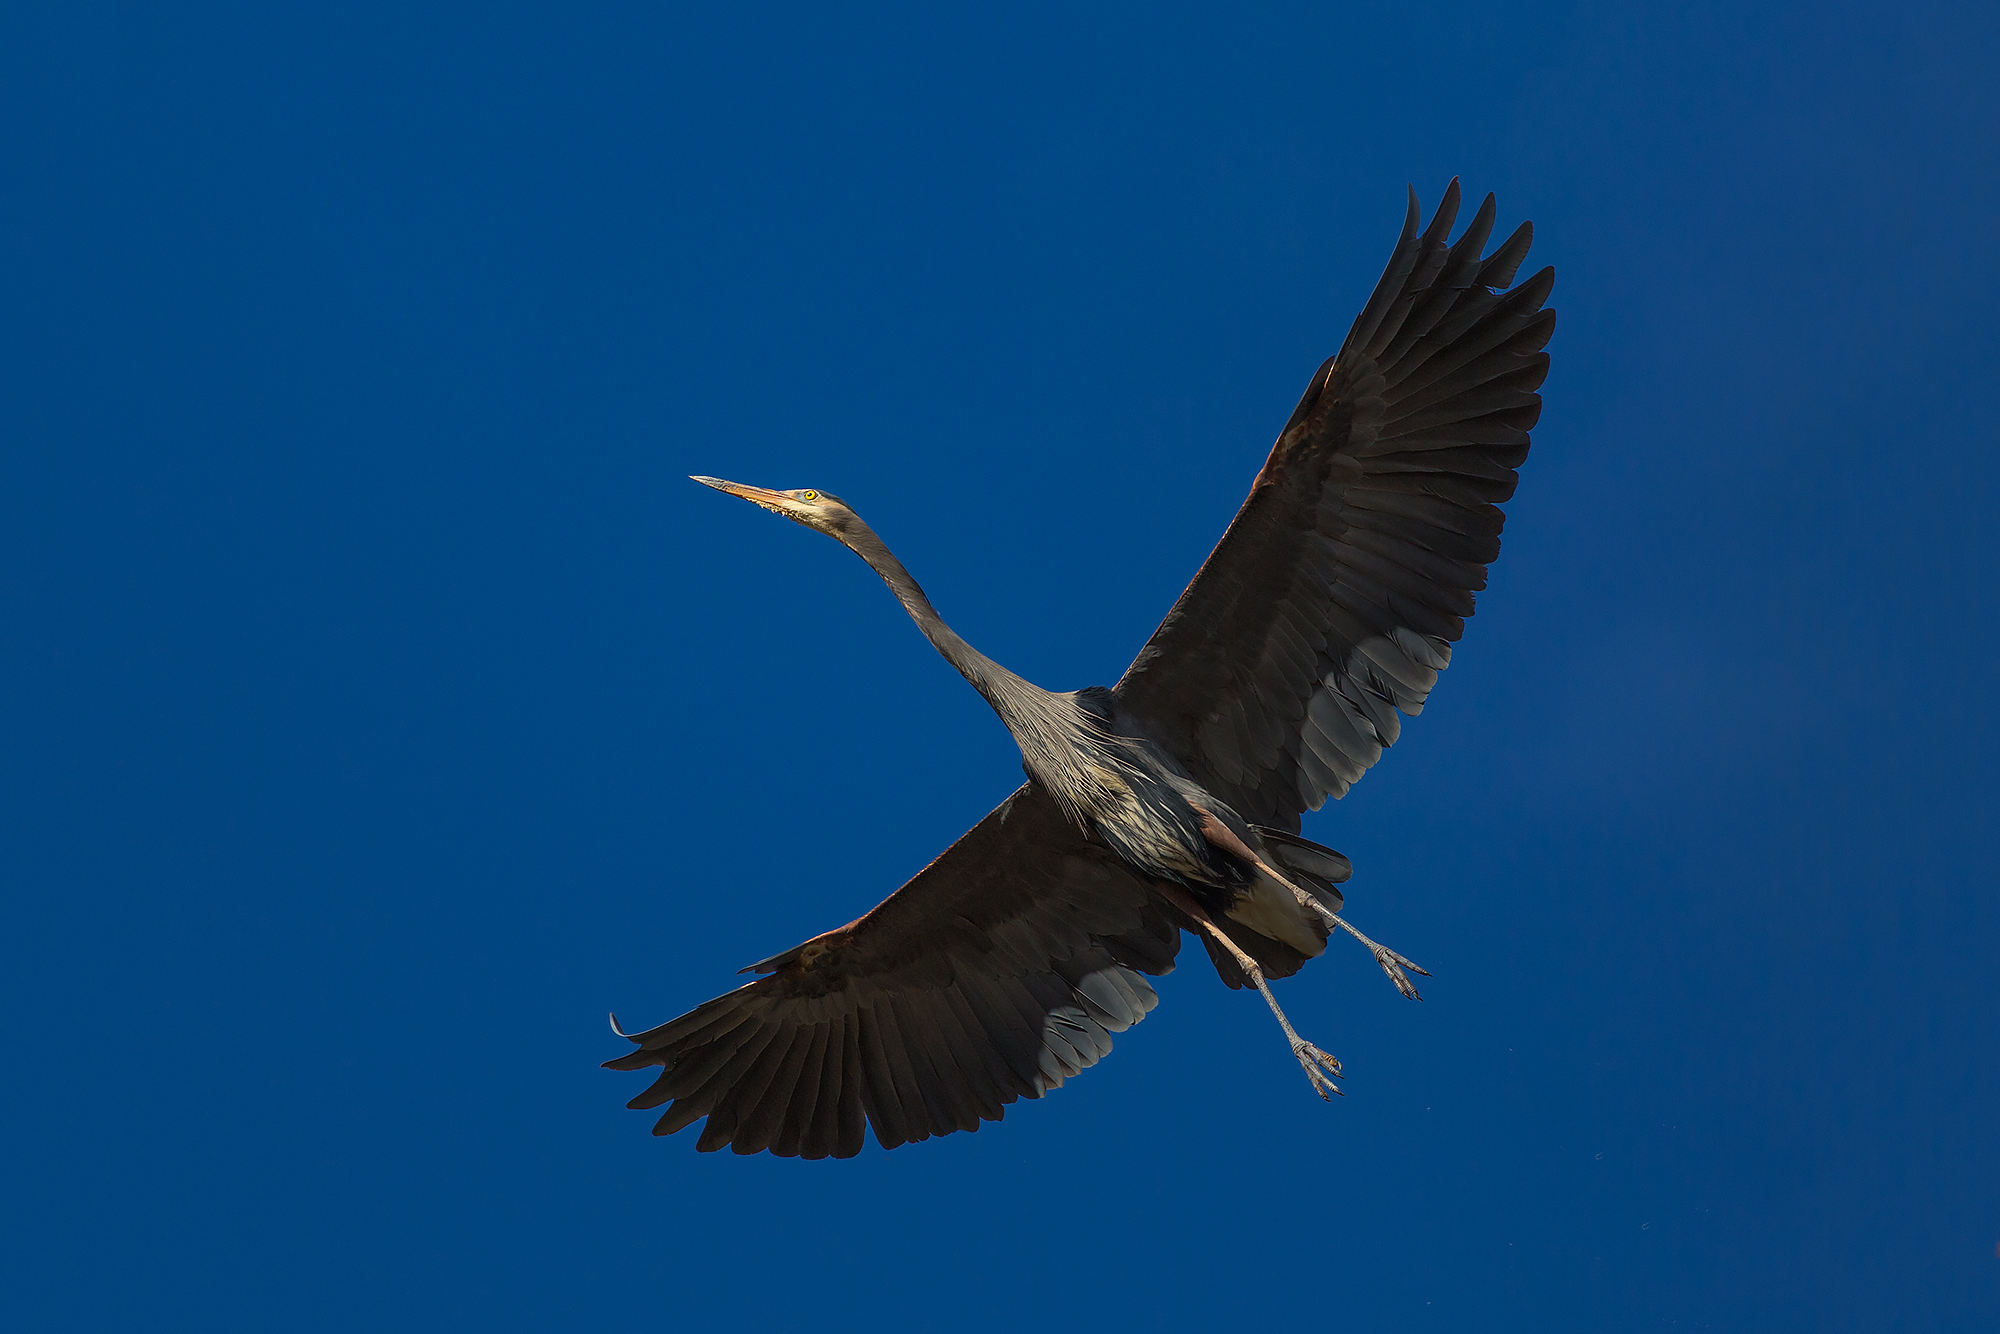 Great Blue Heron in flight at Marymoor Park in Redmond, WA.